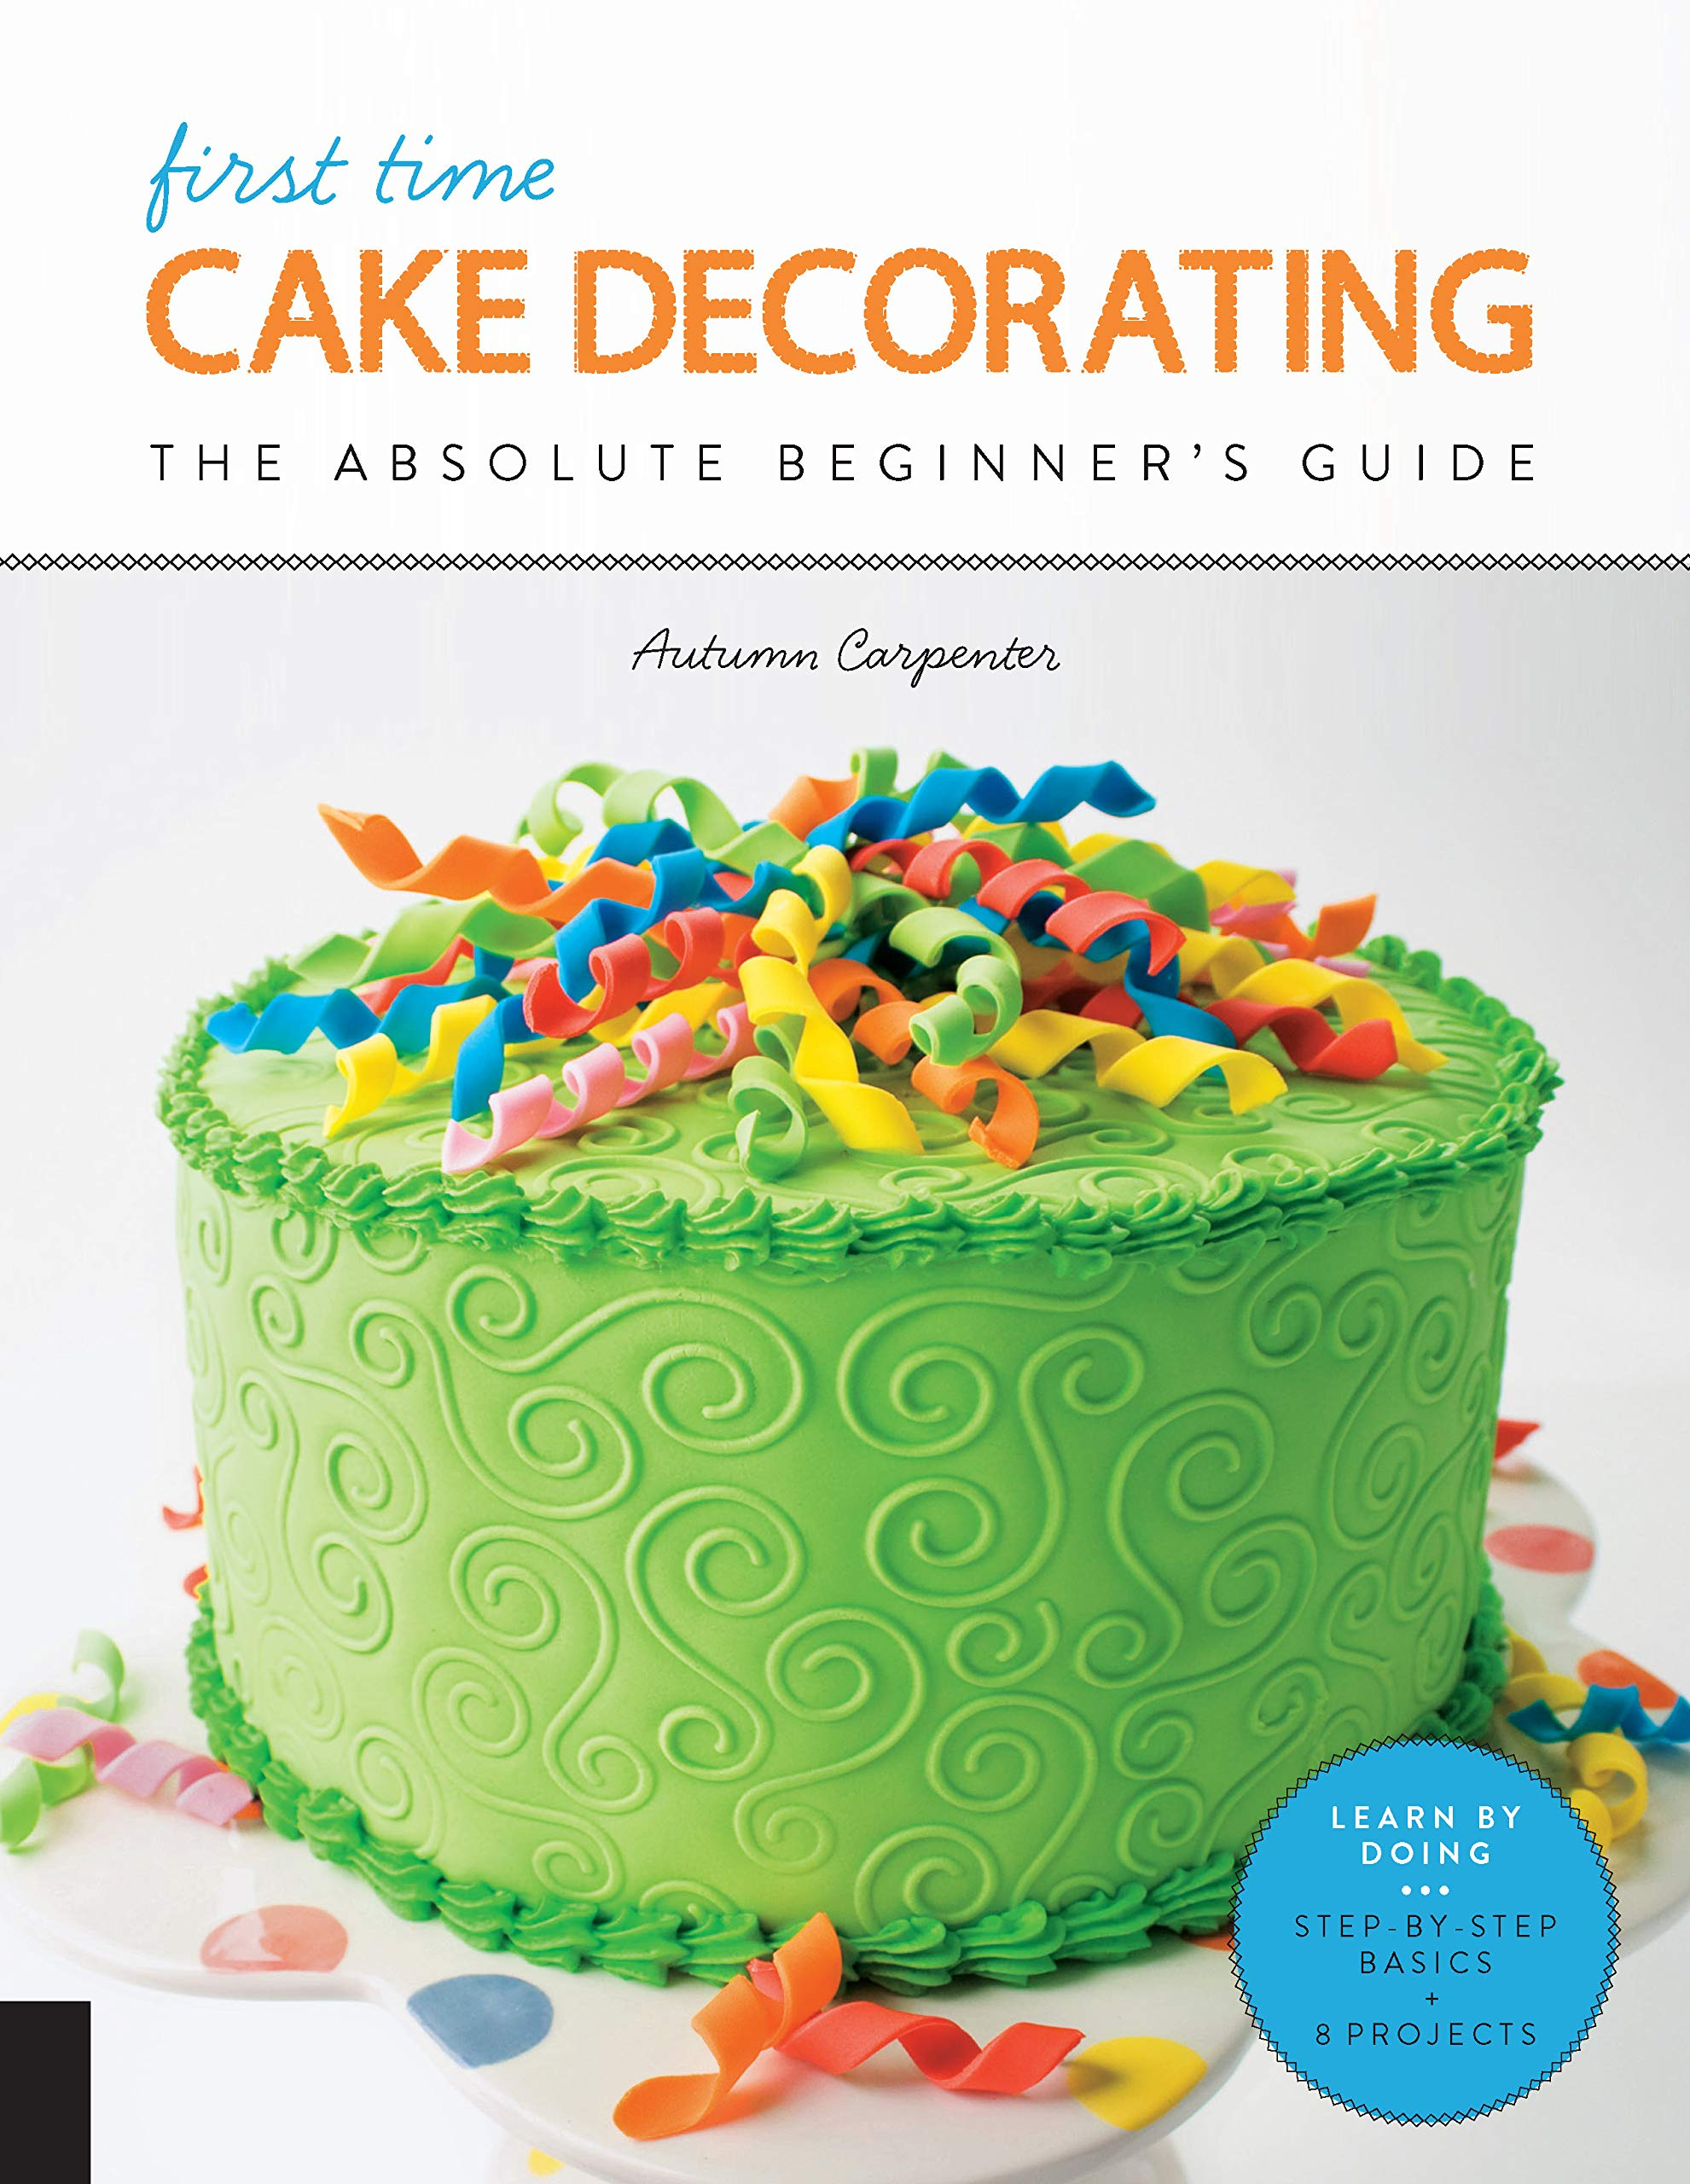 Where To Learn Cake Decorating  from images-na.ssl-images-amazon.com